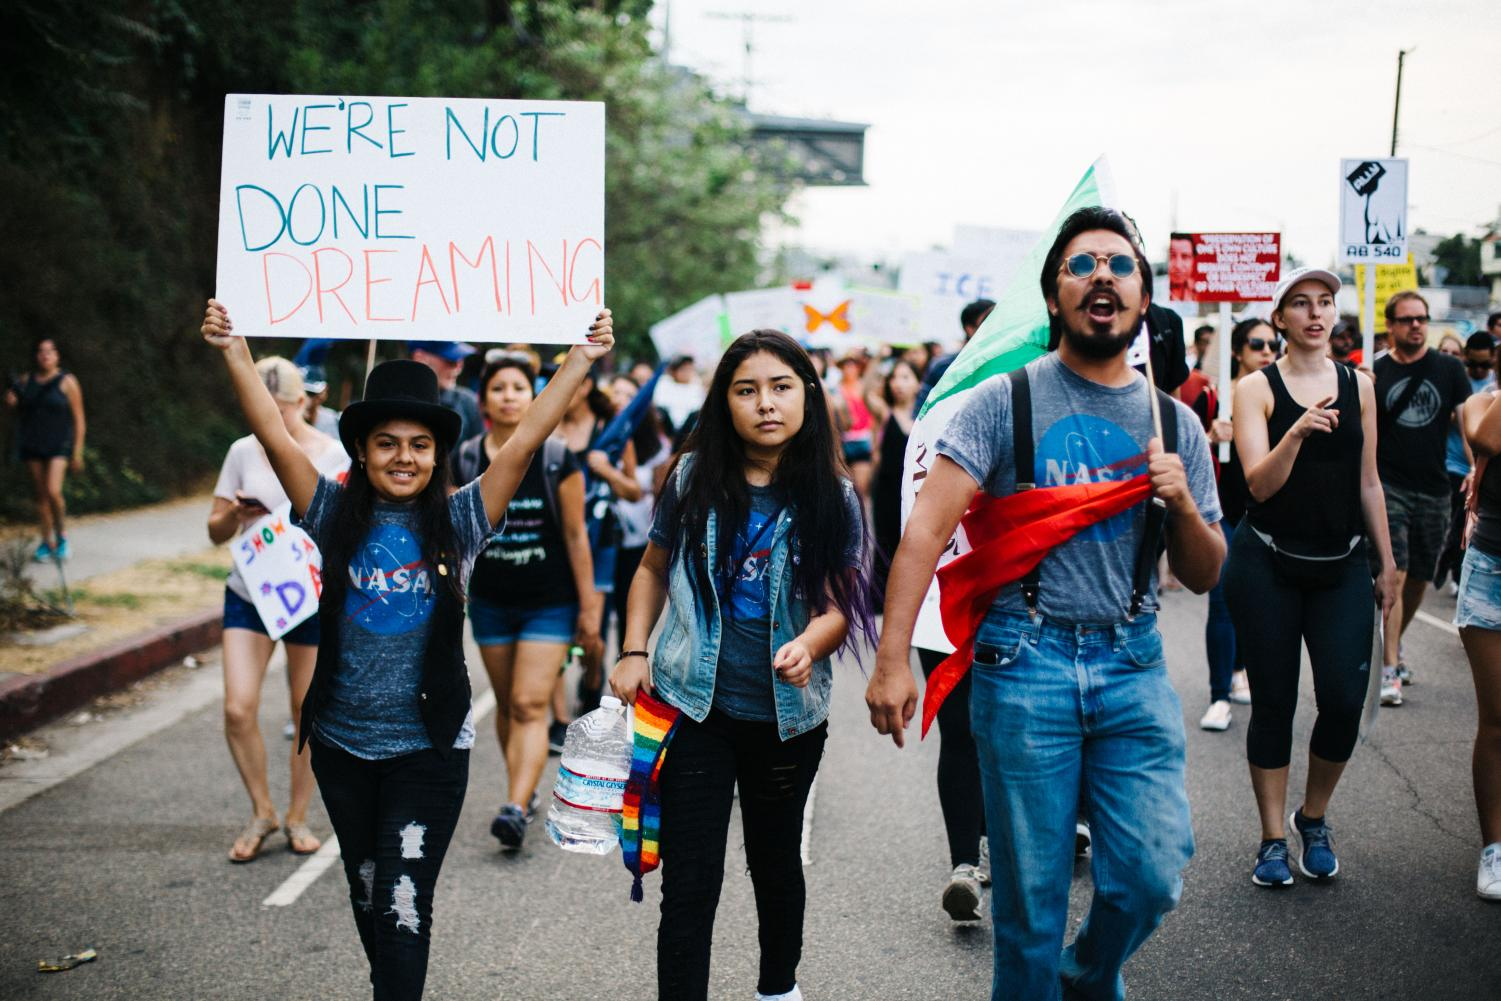 Dreamers march in support of DACA at a rally in Los Angeles.